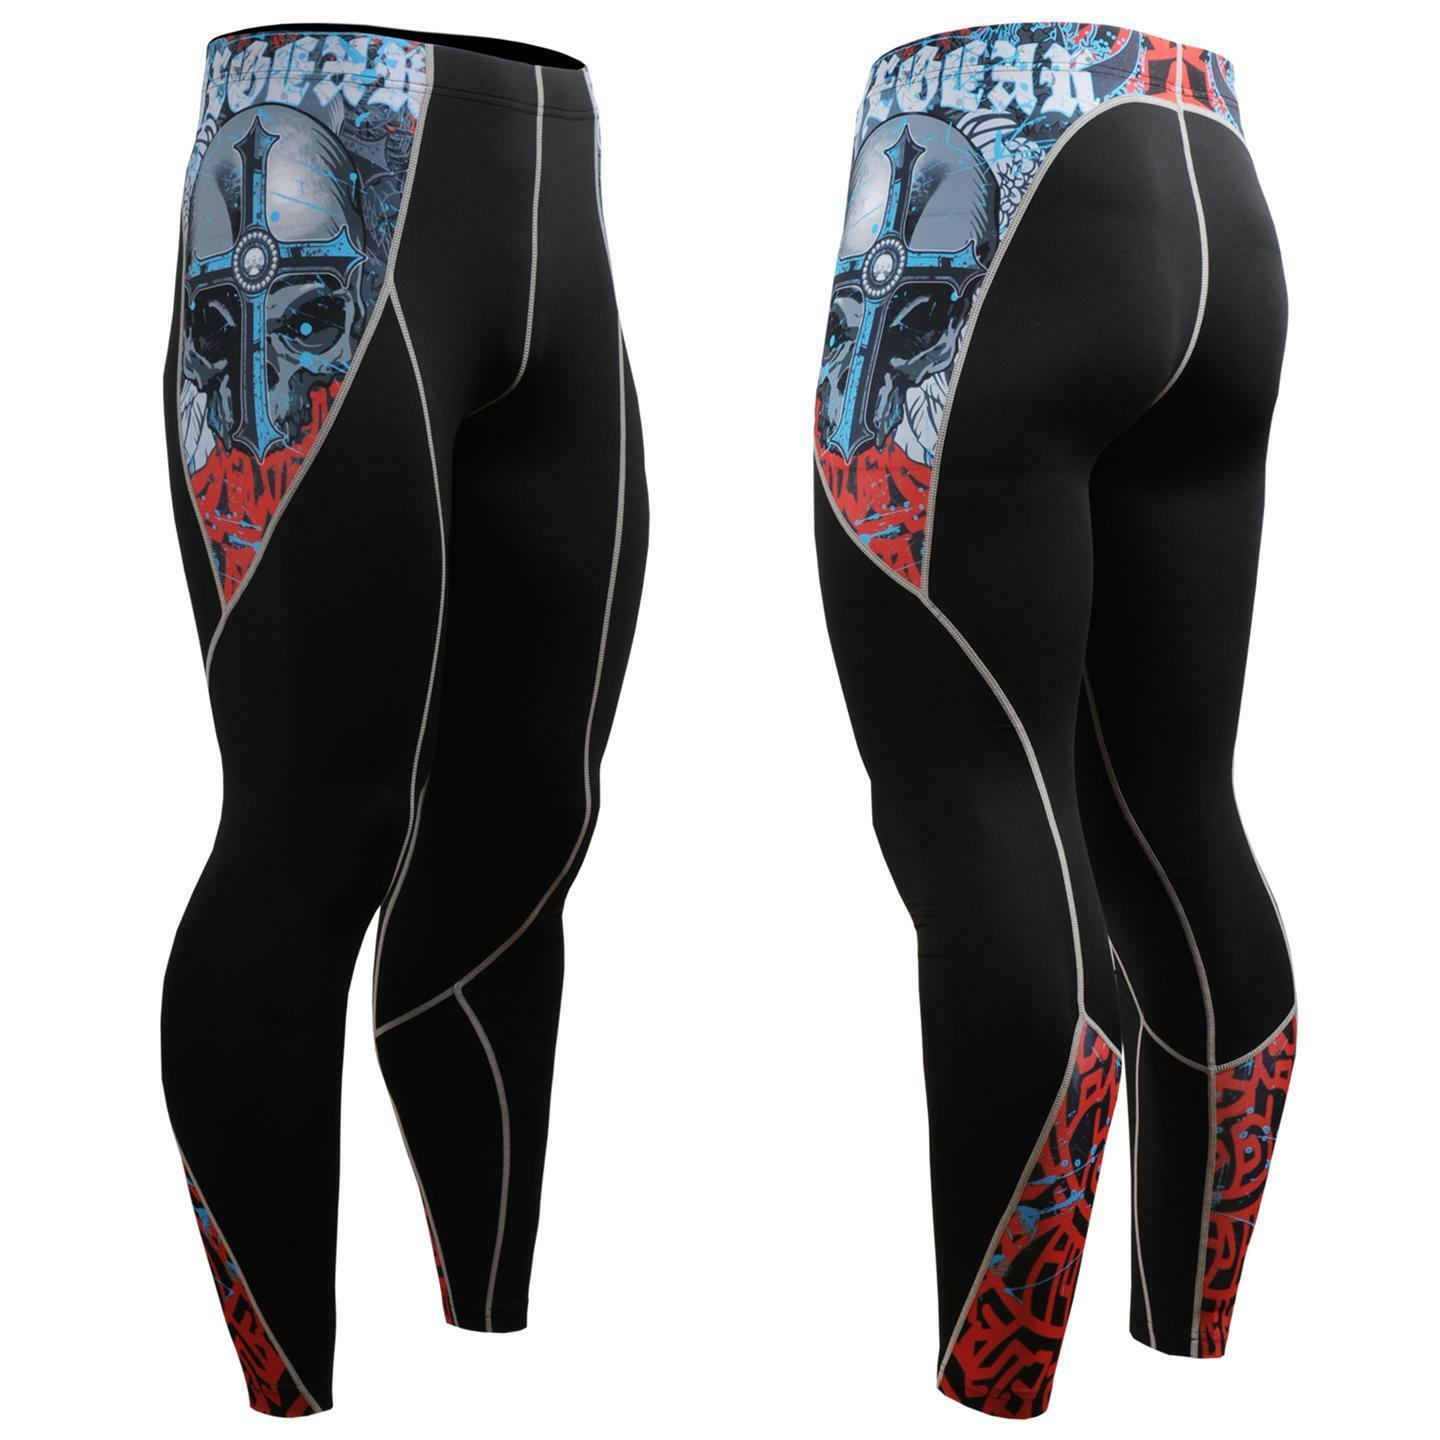 FIXGEAR Compression Skin Tights Leggings Pants P2L-B73 MMA Workout Fitness GYM